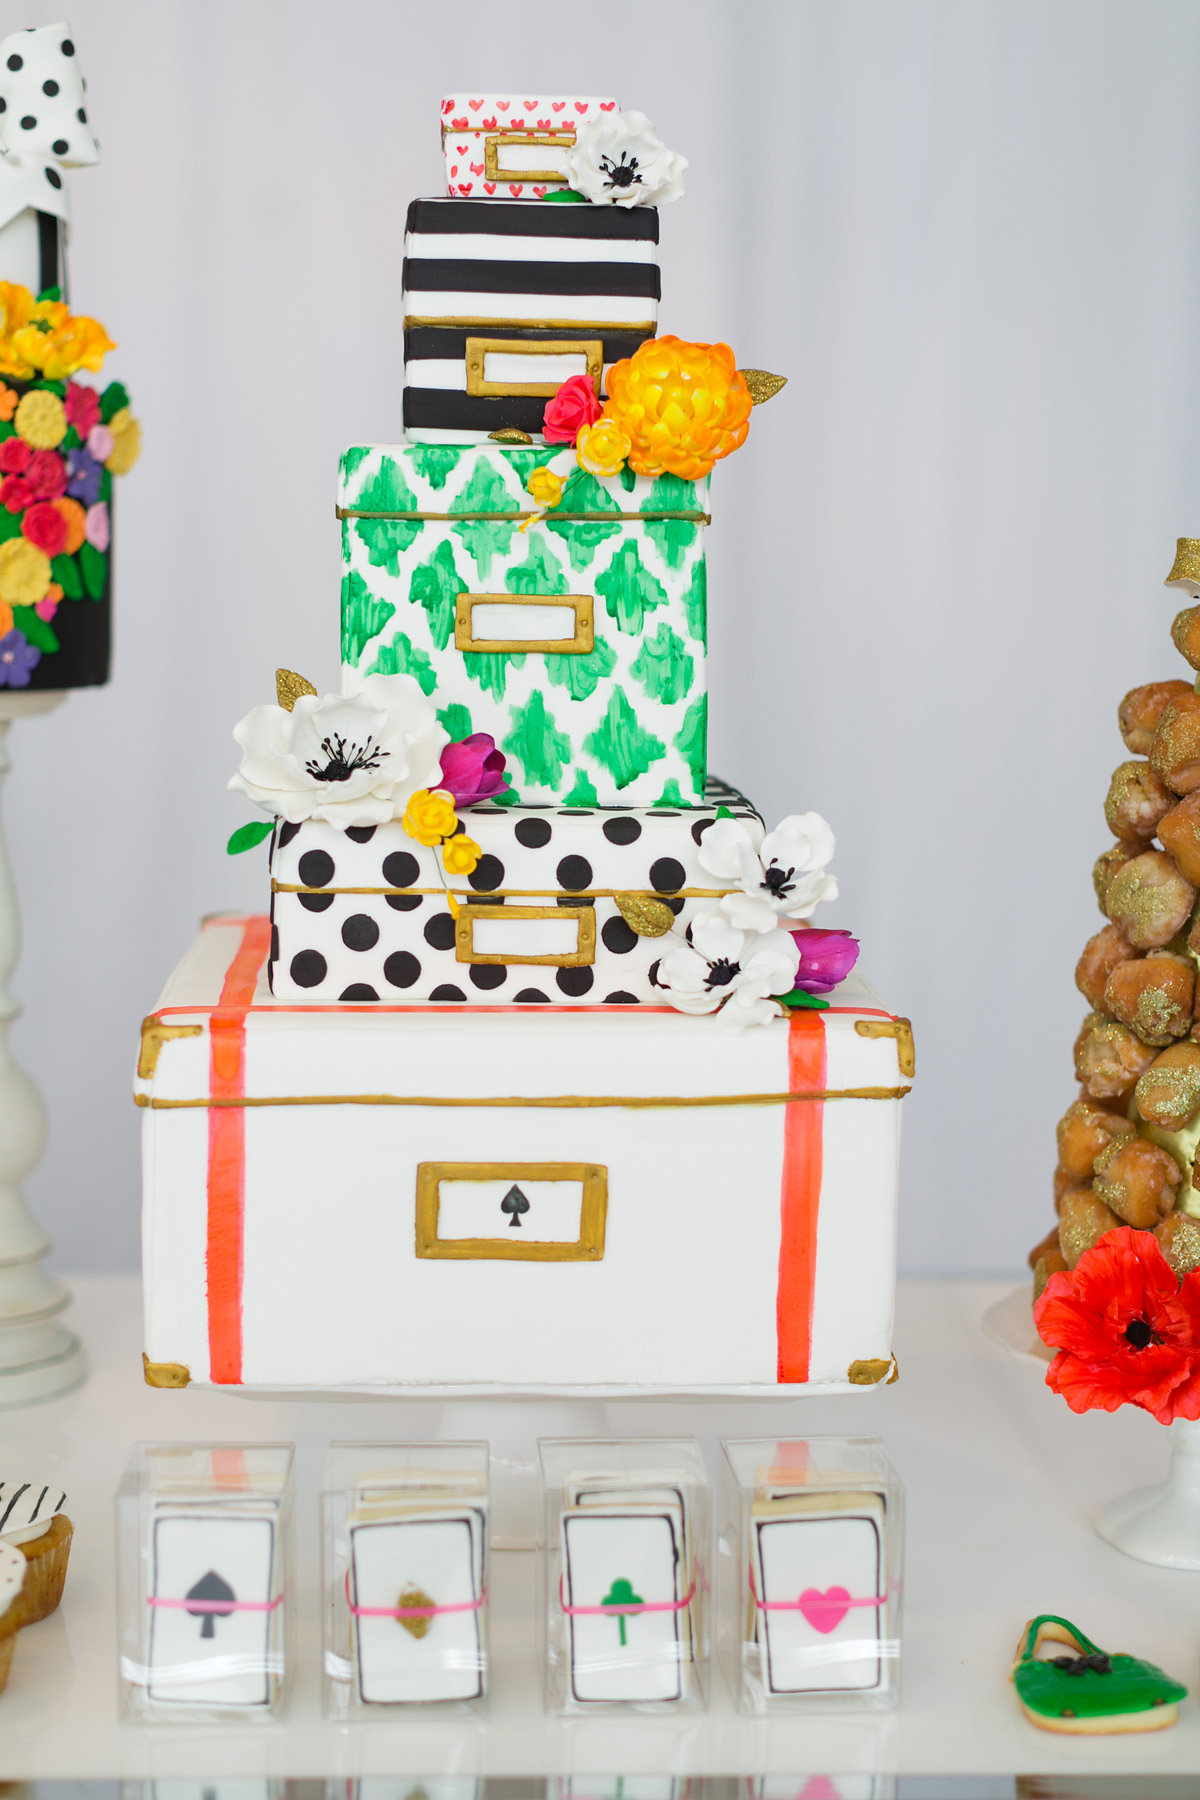 Black and white polka dot and striped Kate Spade themed luggage traveling cake